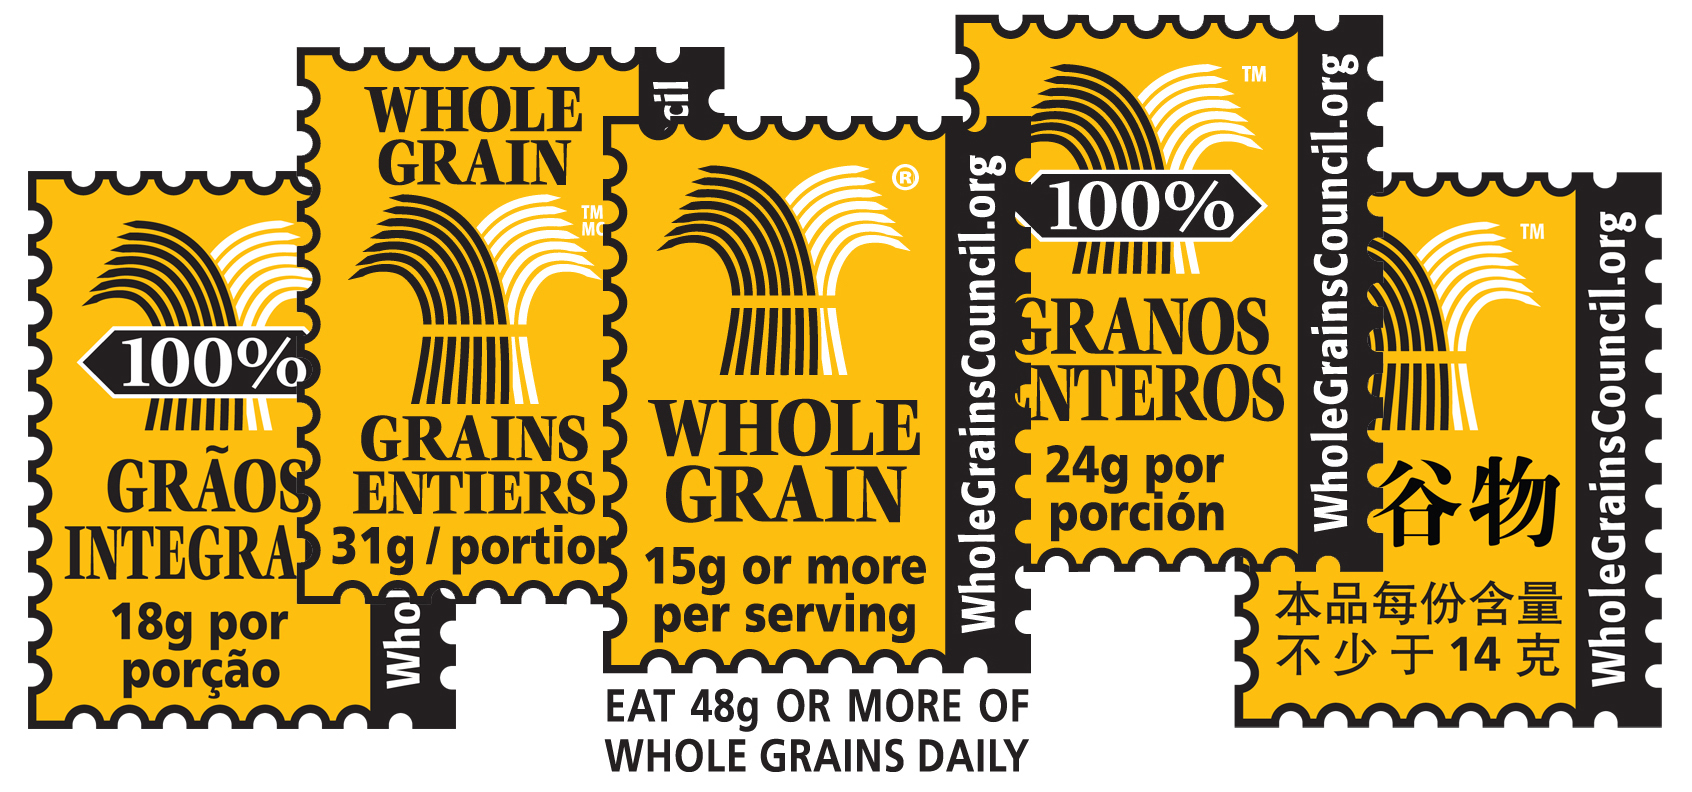 Photo courtesy of Oldways and the Whole Grains Council, wholegrainscouncil.org